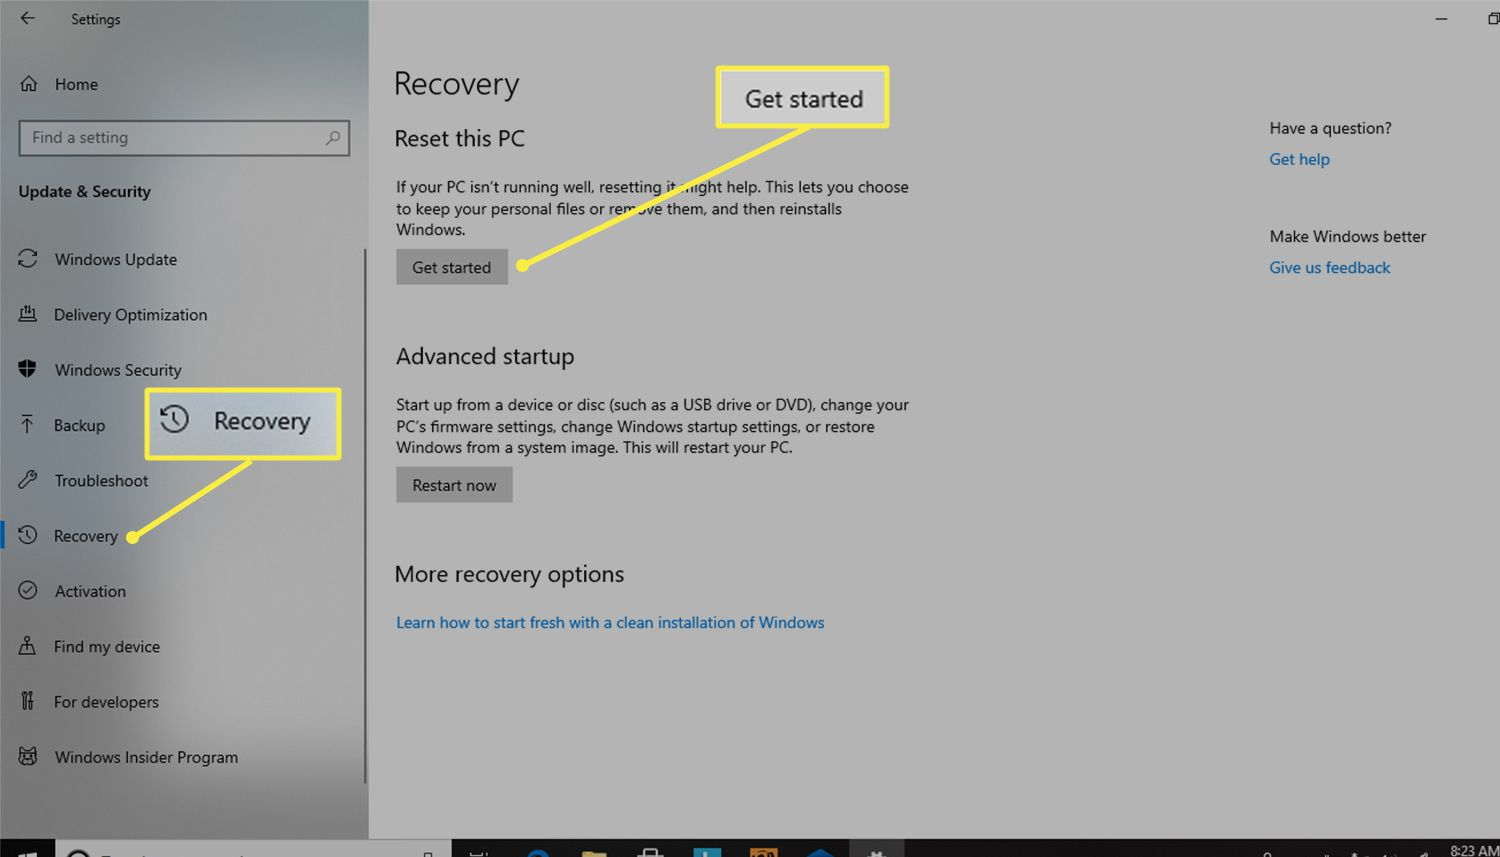 Get started button under Reset this PC from the Recovery section of Windows Settings